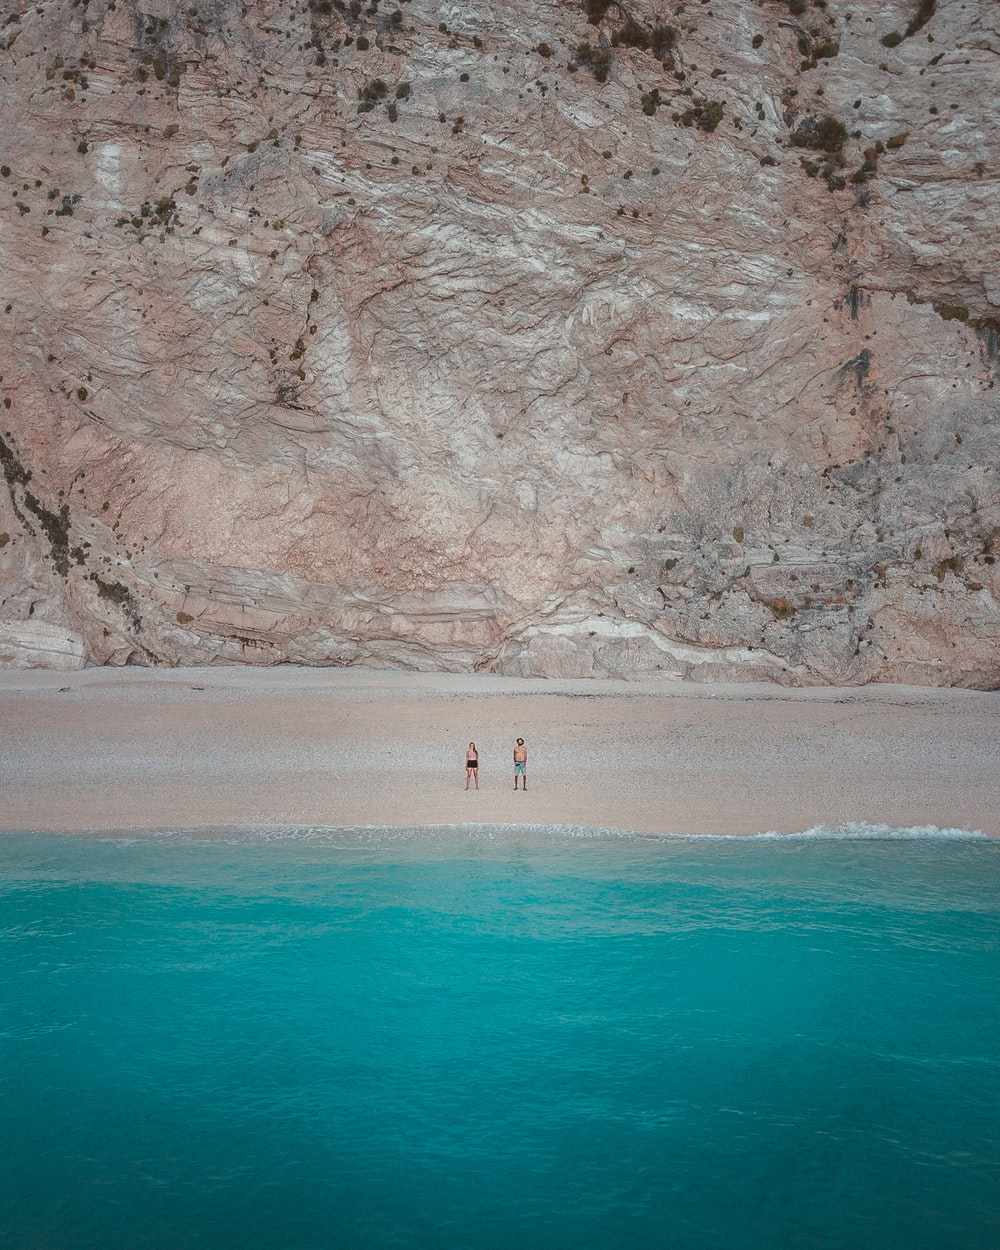 two people standing on shore near body of water